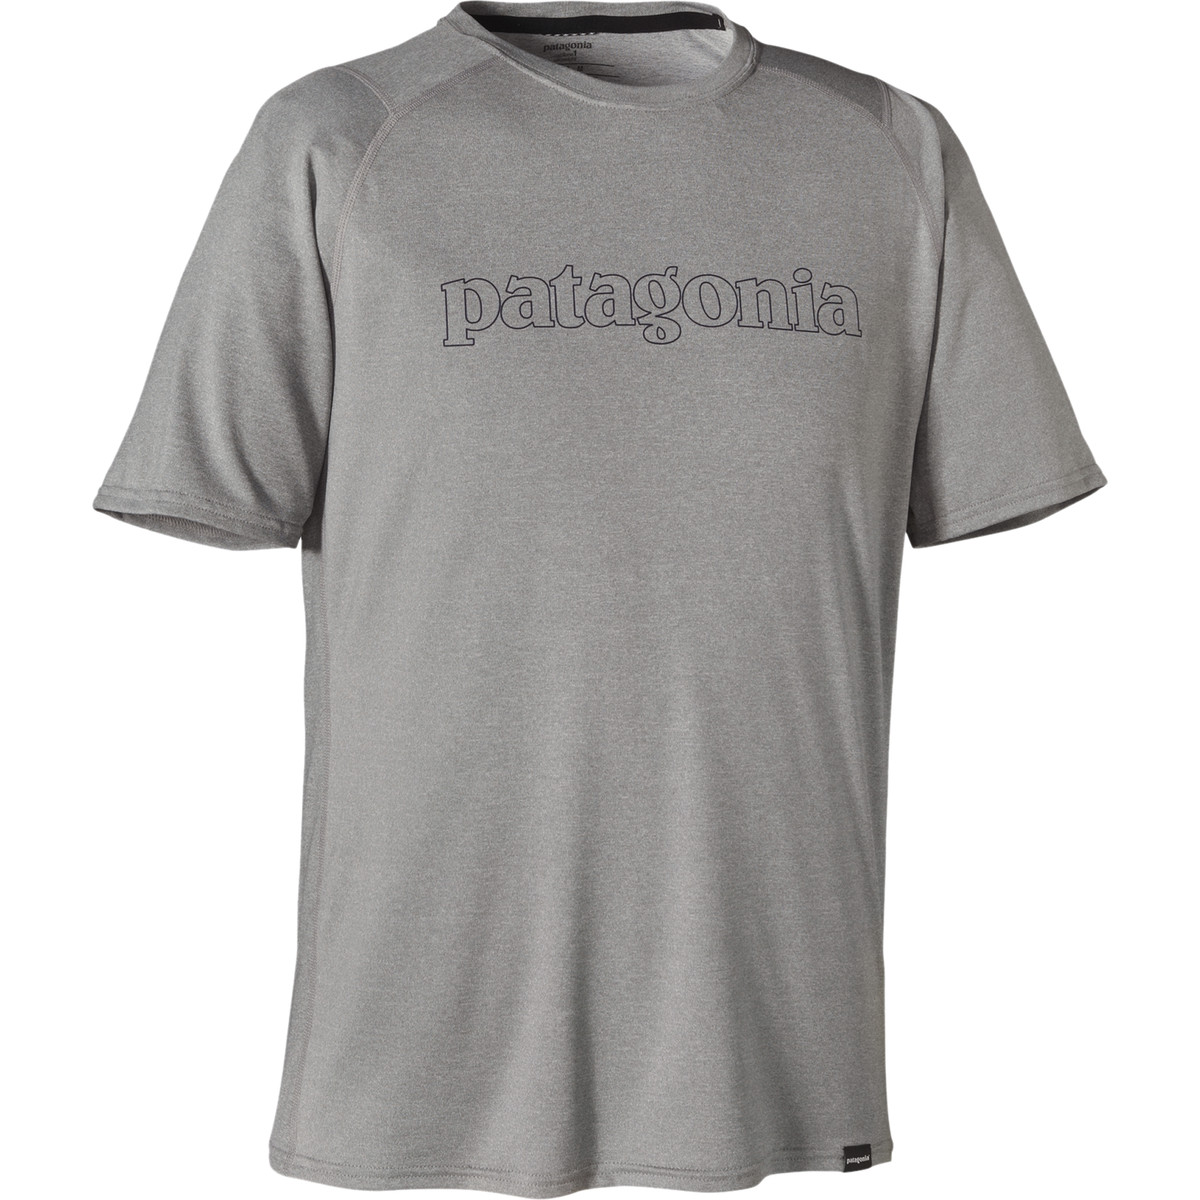 Patagonia Capilene 1 Silkweight Graphic T-Shirt